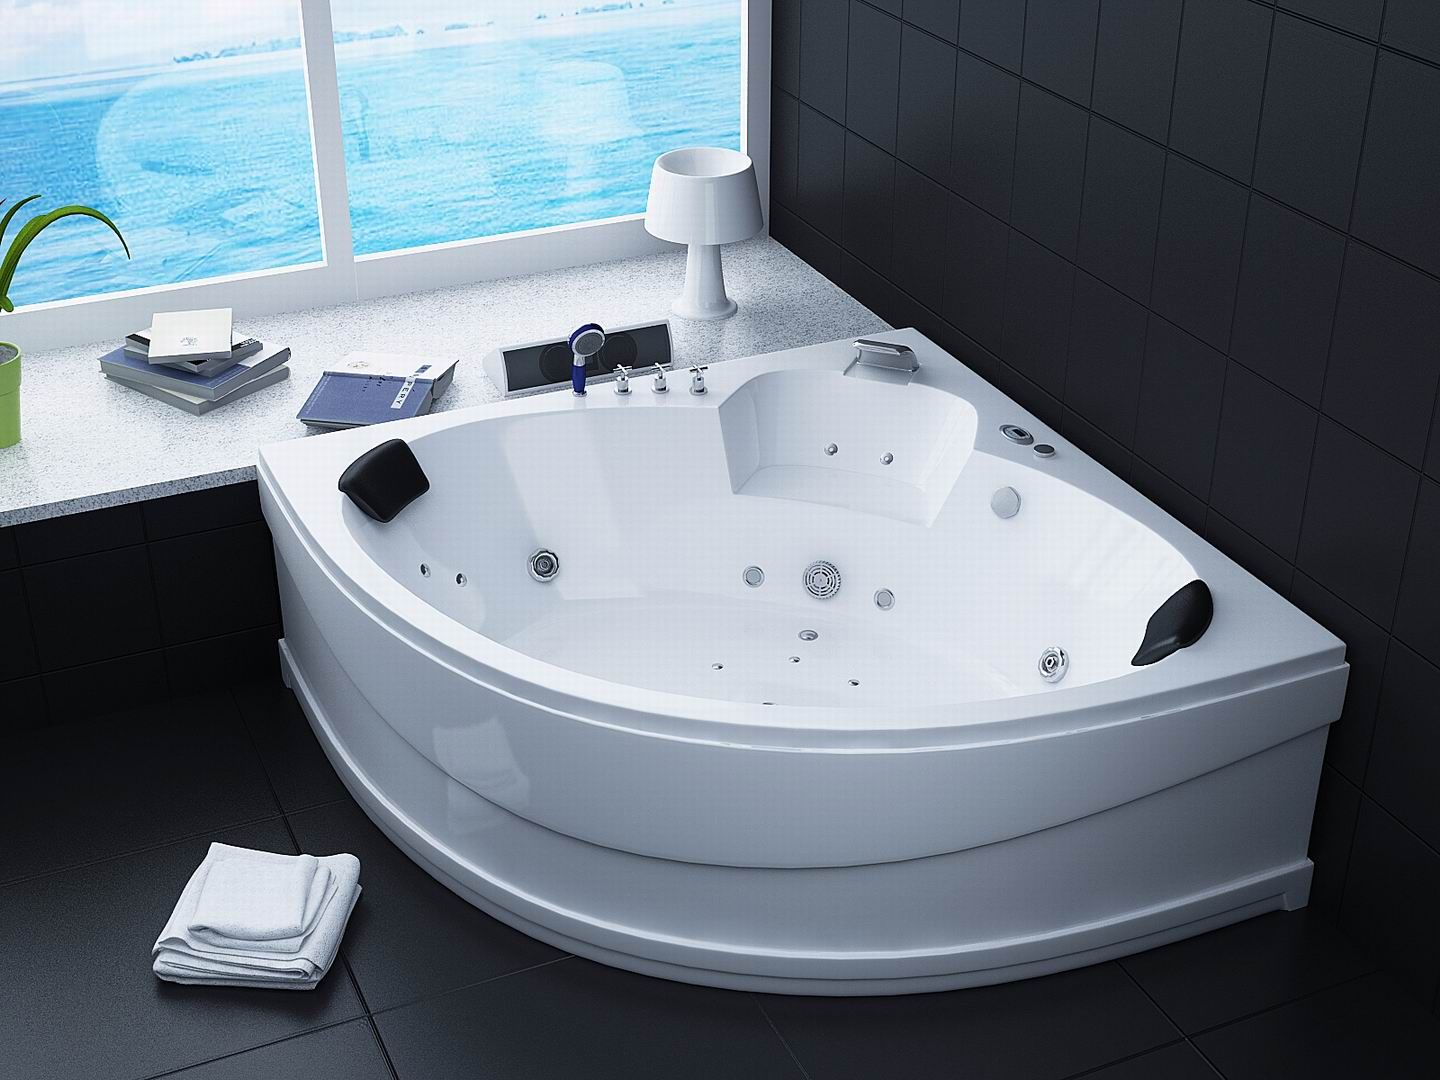 Bathroom Jet Tubs jacuzzi bathtub. whirlpool bathtub hydromassage soaking bathtub sb